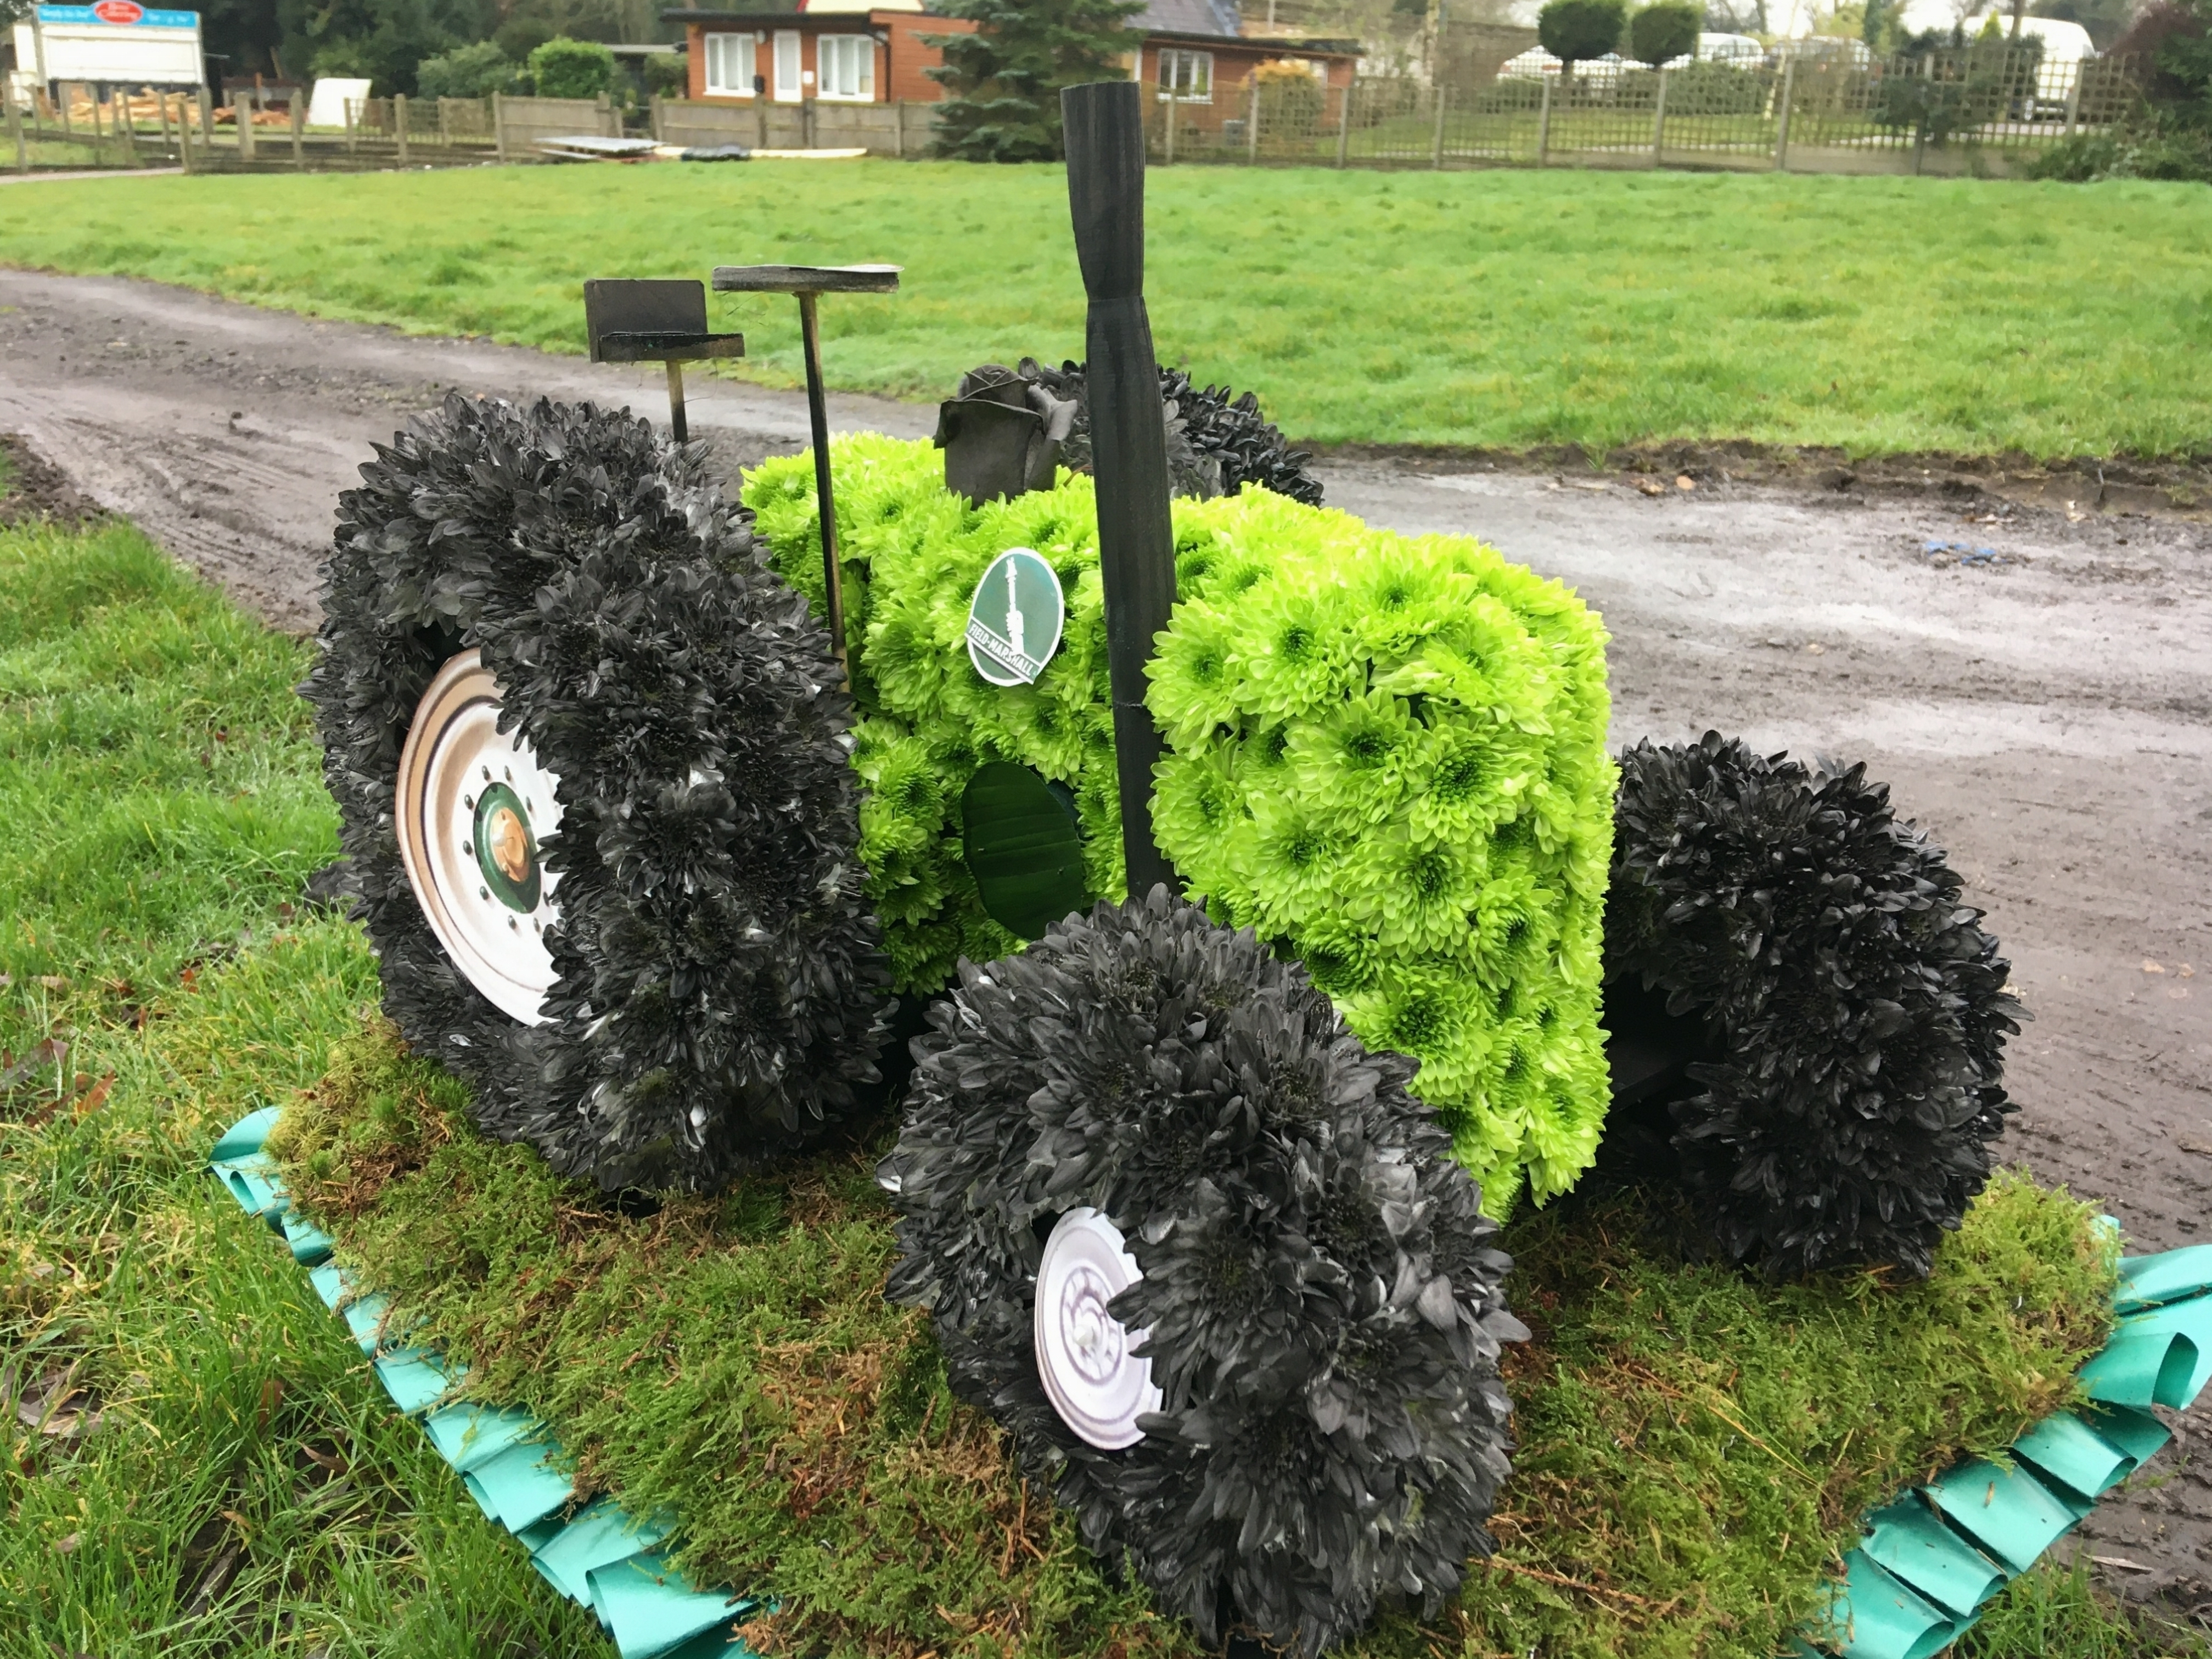 Tractor made from flowers